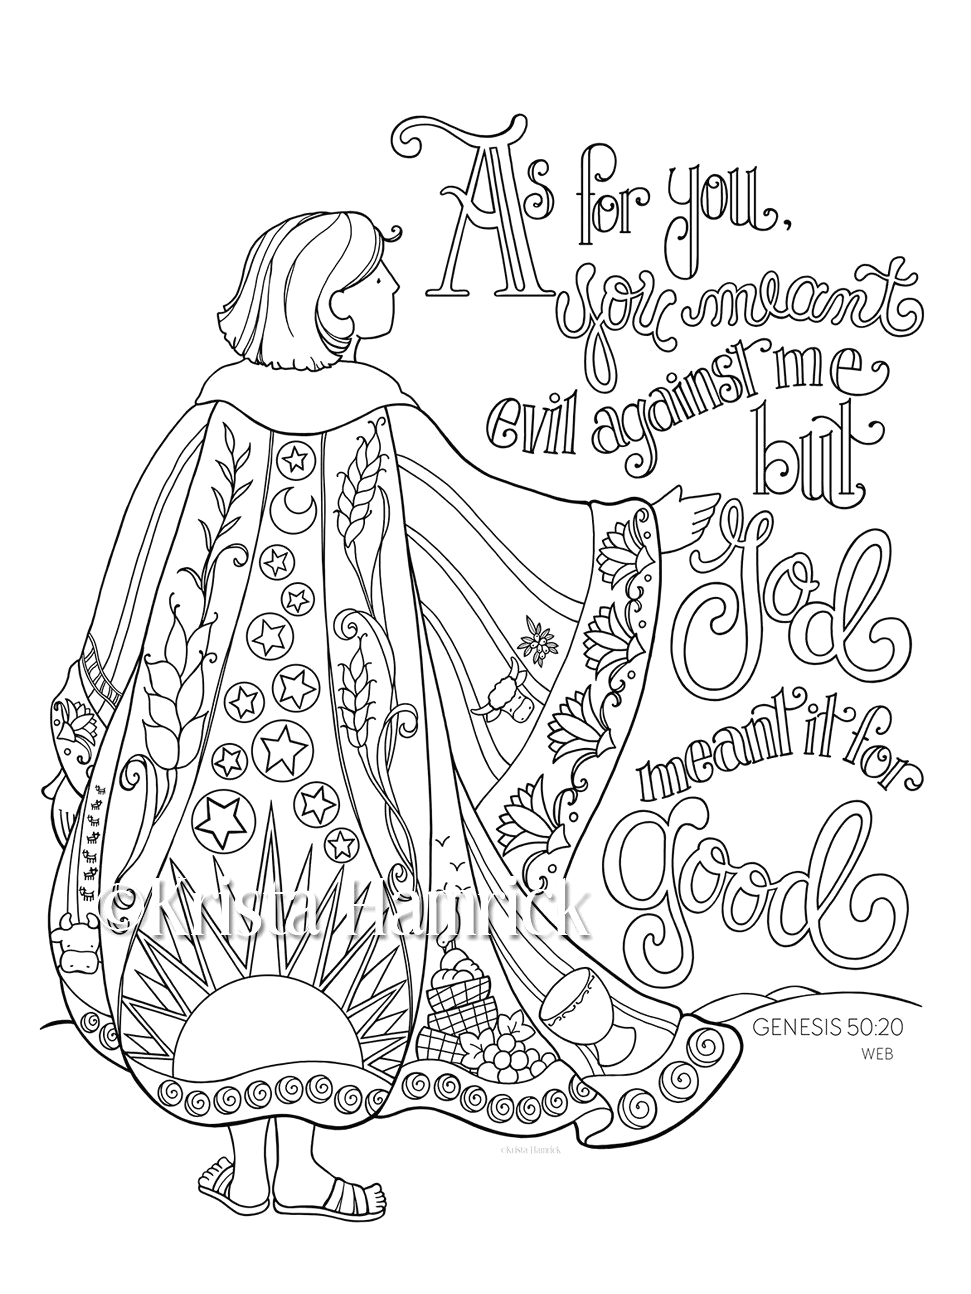 Coloring Pages Joseph and the Coat Of Many Colors Joseph S Coat Of Many Colors Coloring Page 8 5×11 Bible